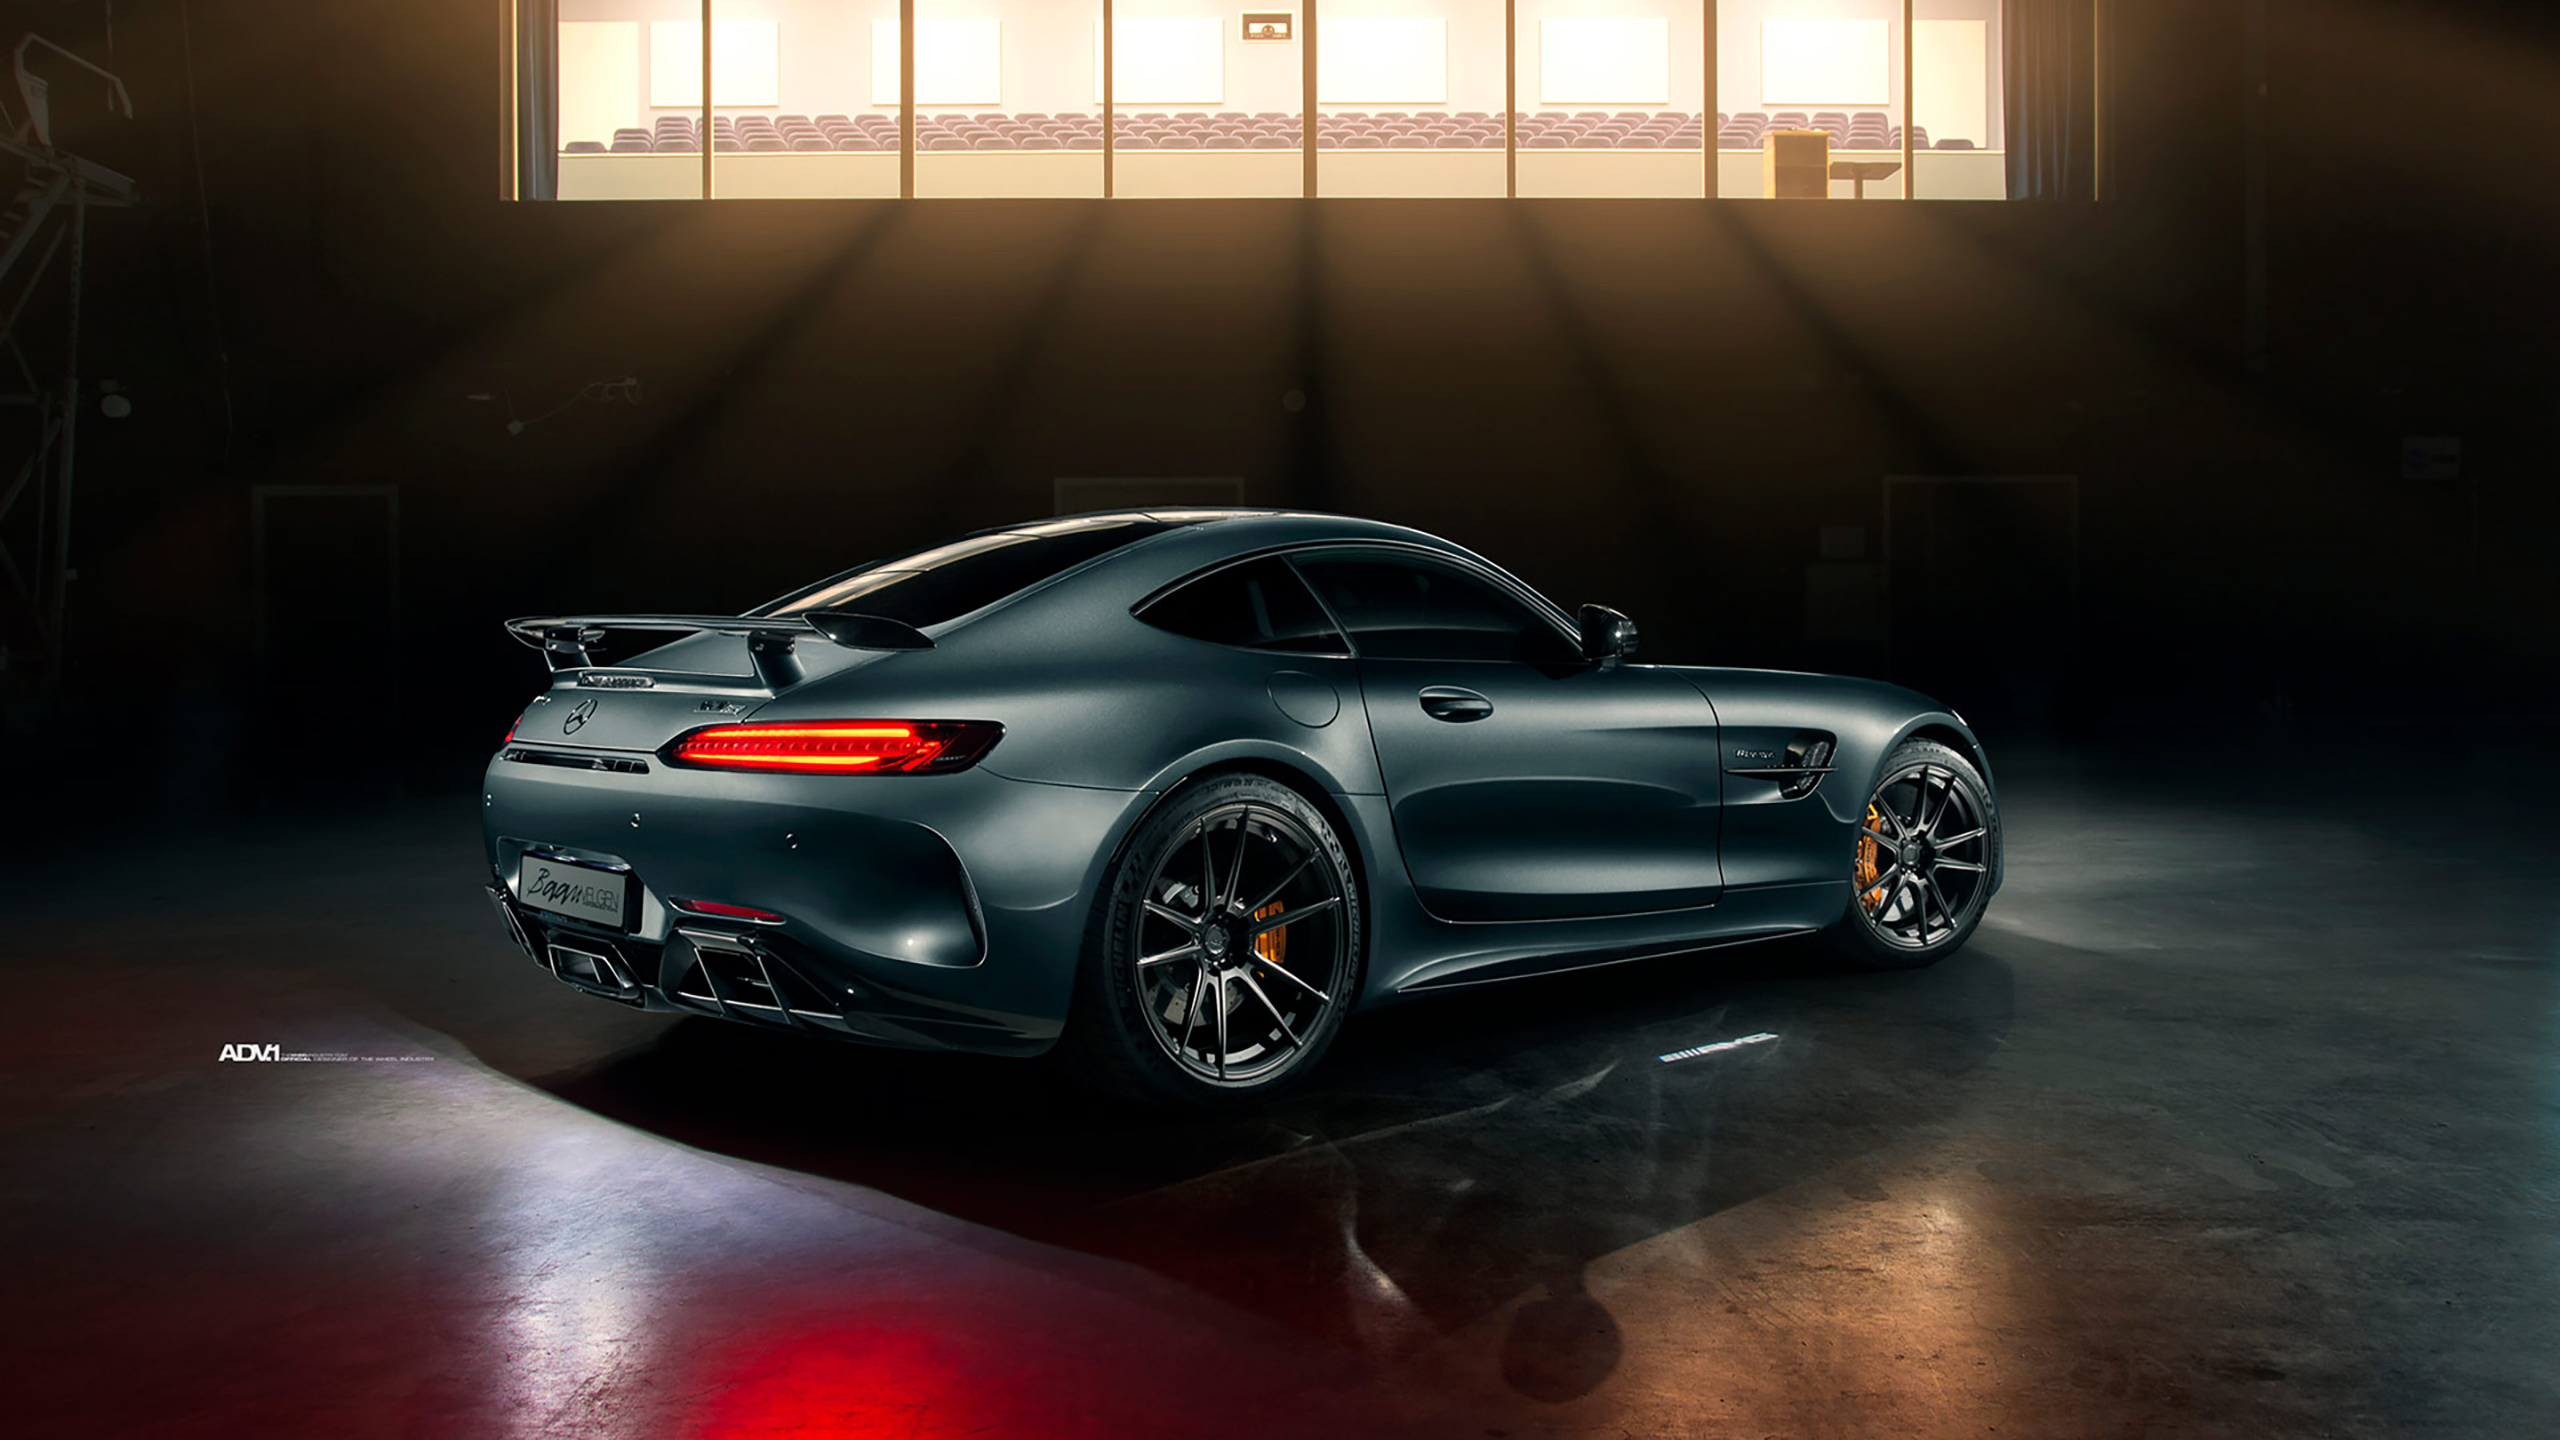 Mercedes Amg Gt R >> Mercedes-AMG GT R 3 Wallpaper | HD Car Wallpapers | ID #12526